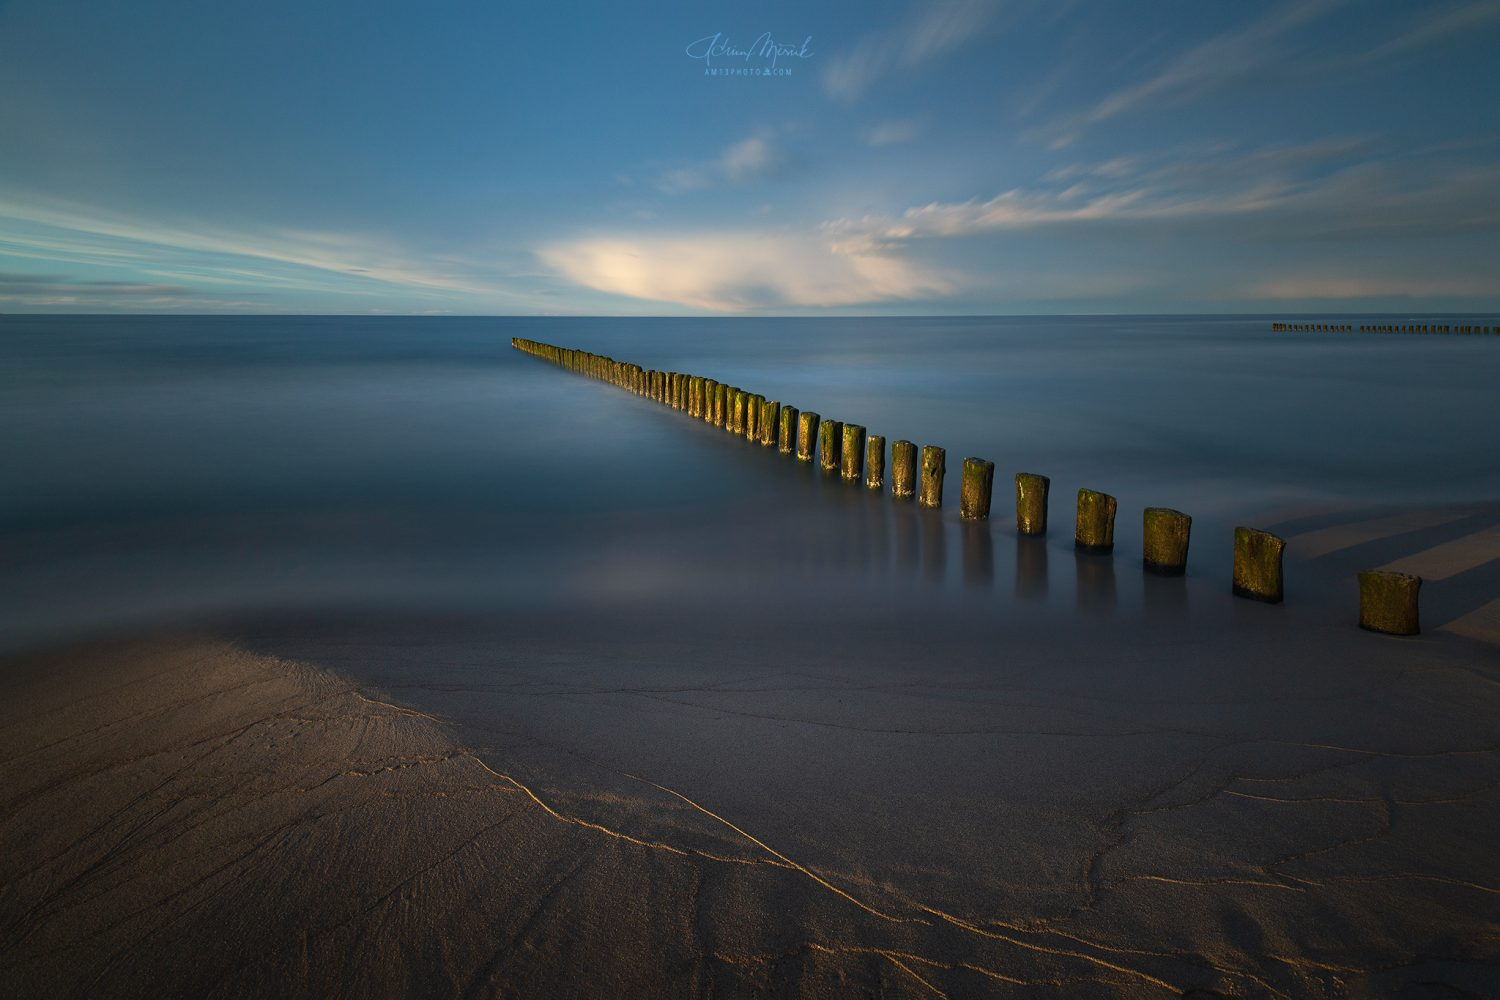 Baltické more, Long exposure, Lee Big stopper filter